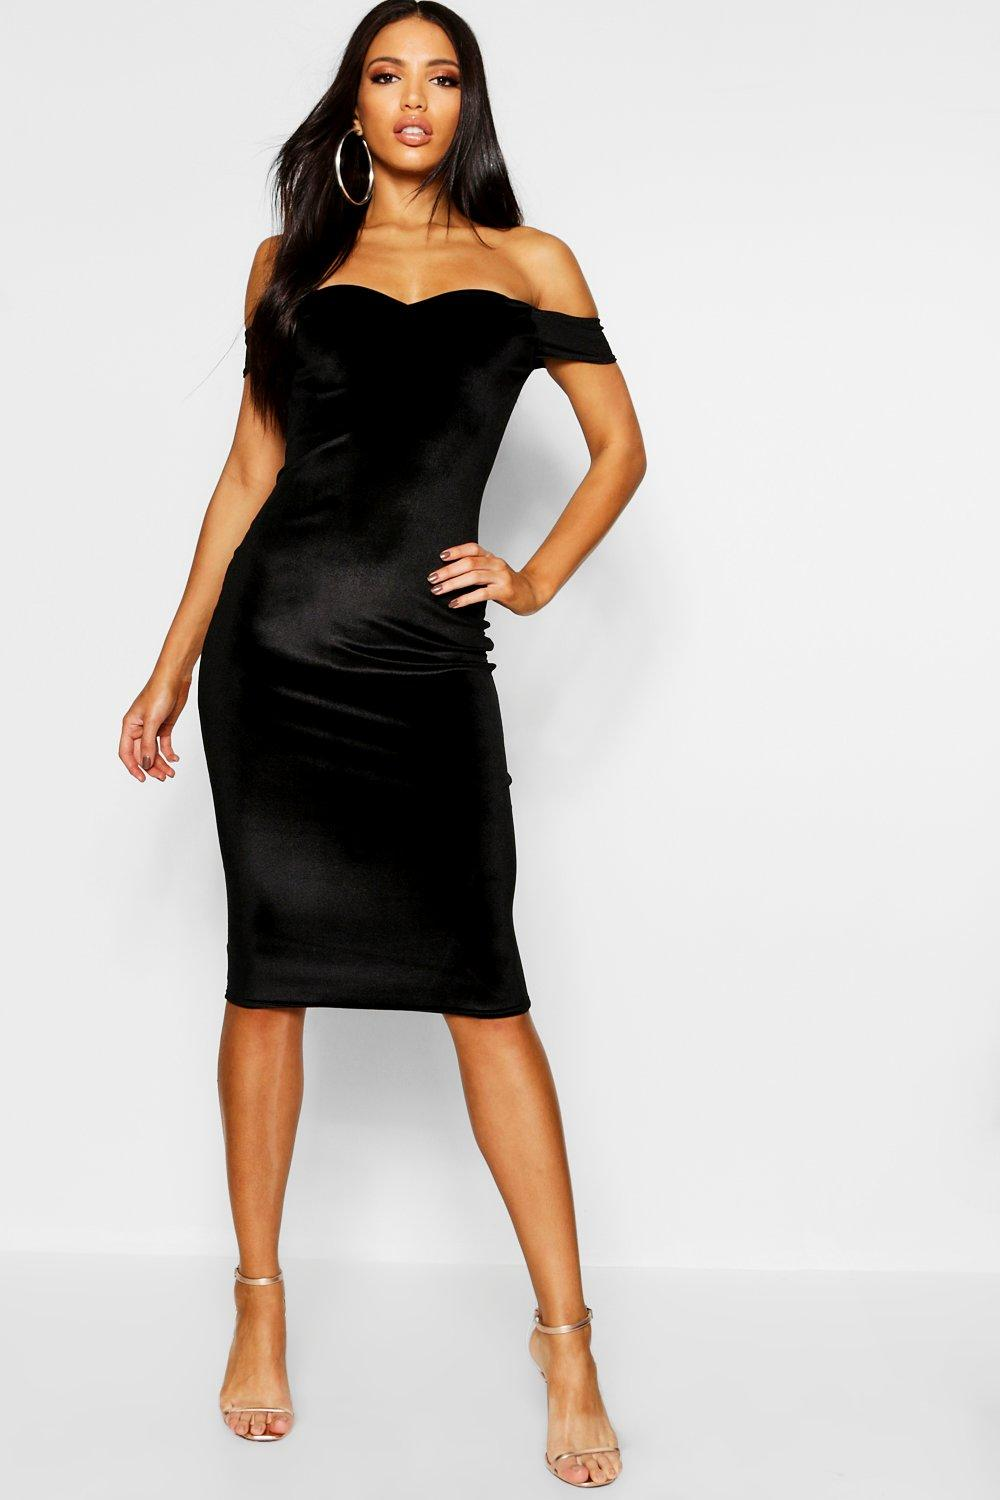 Naya Velvet Off The Shoulder Midi Dress at boohoo.com